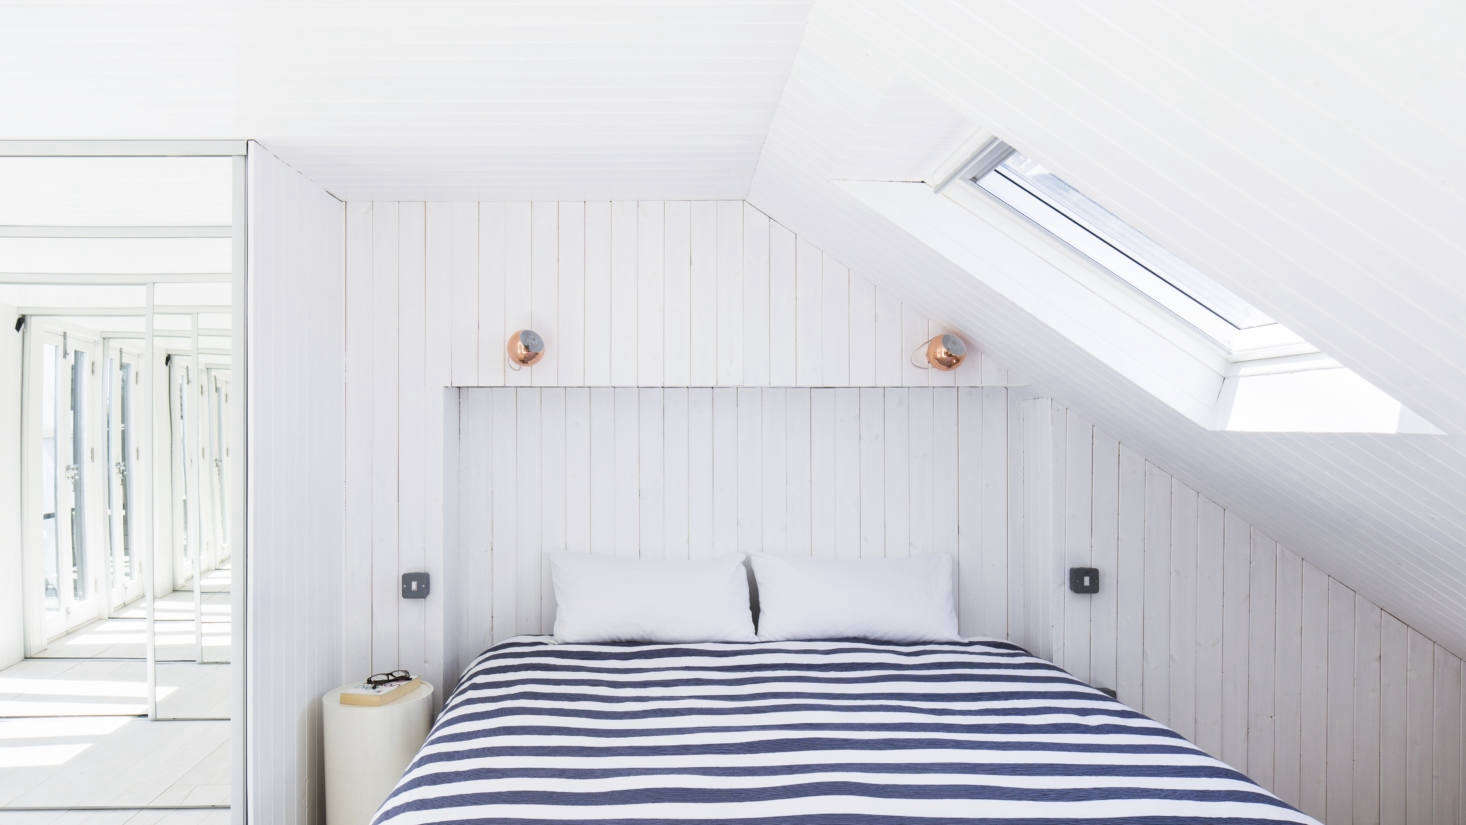 The whitewashed paneling continues in the under-the-eaves master bedroom, which integrates one of the roof extensions. A recess in the paneling takes the place of a headboard.